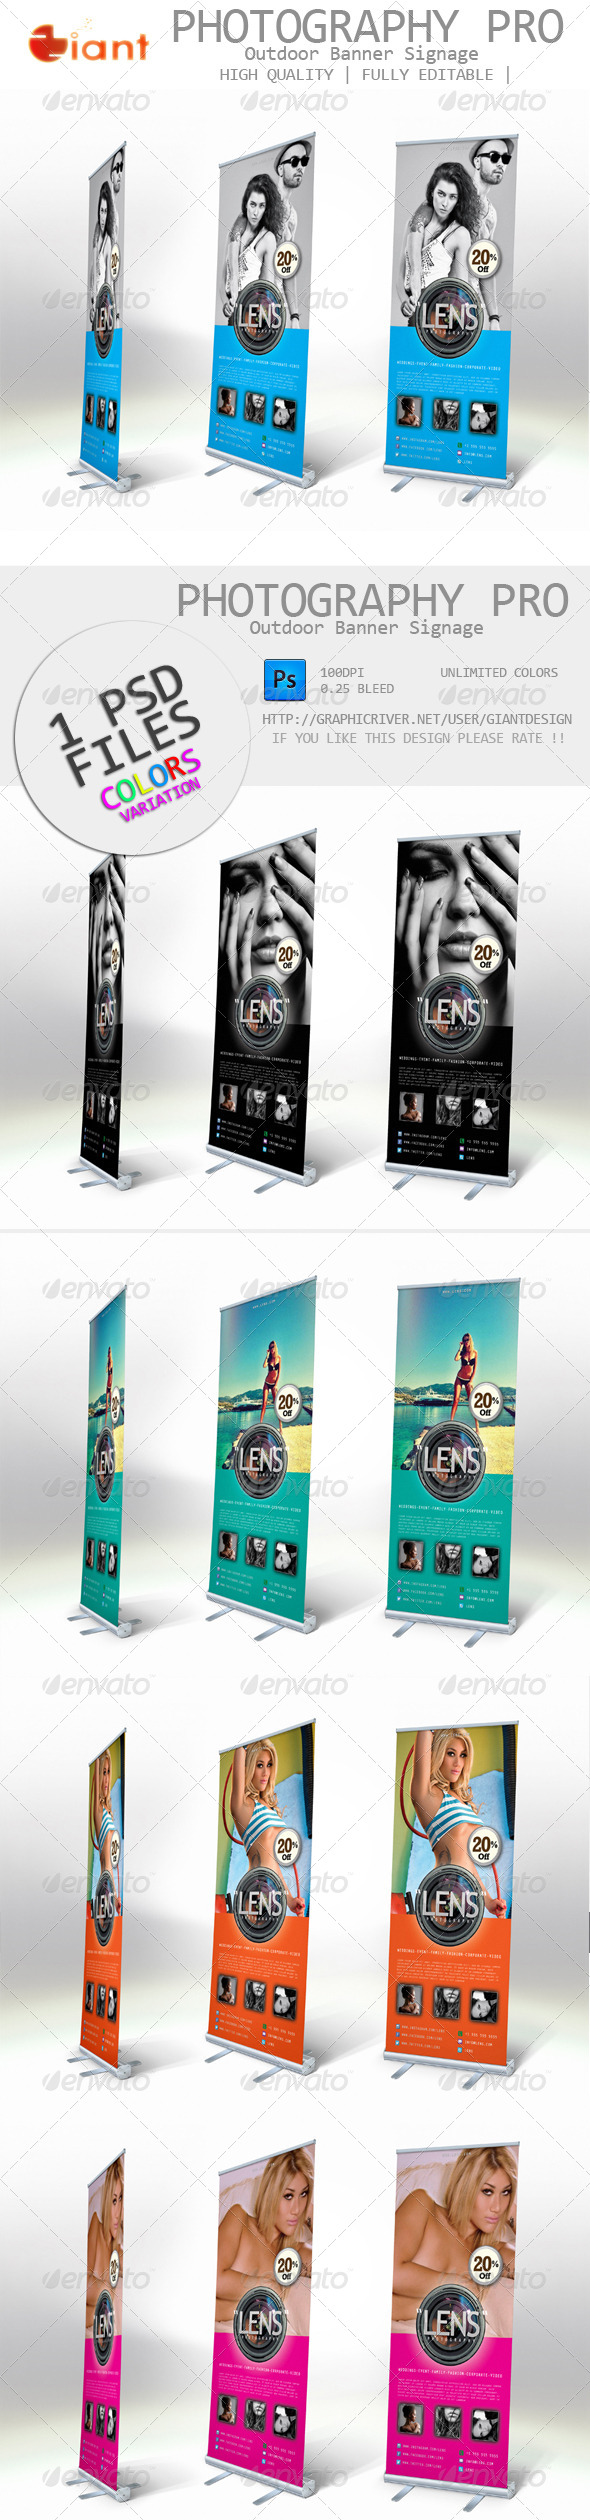 GraphicRiver Photography Pro Outdoor Banner Signage 5880430